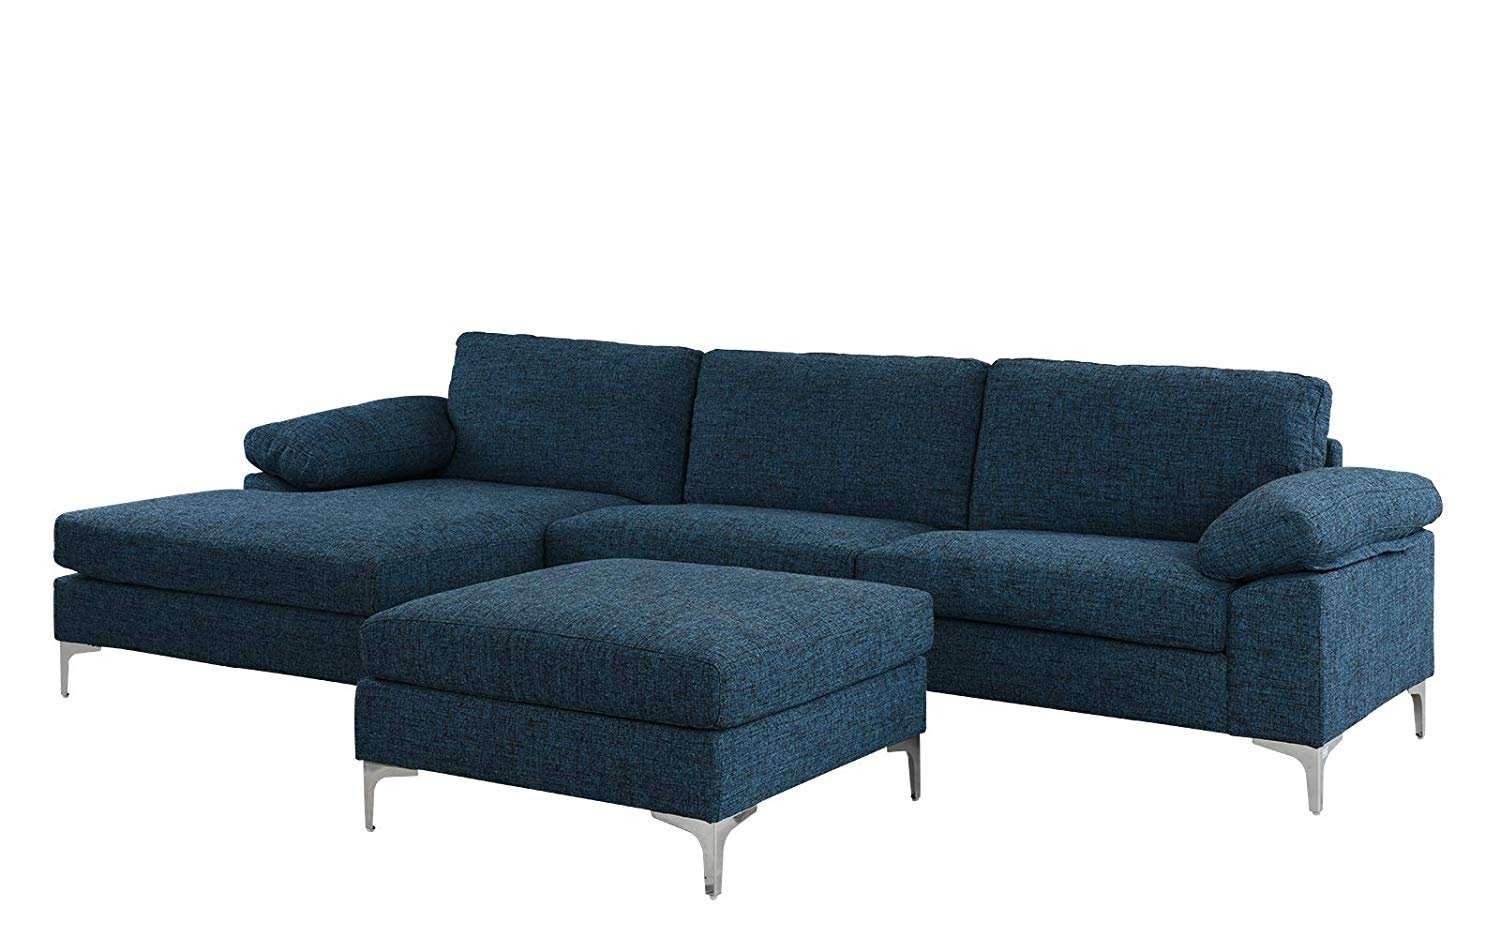 """Large 108.2"""" inch Sectional Sofa with Ottoman, L-Shape ..."""